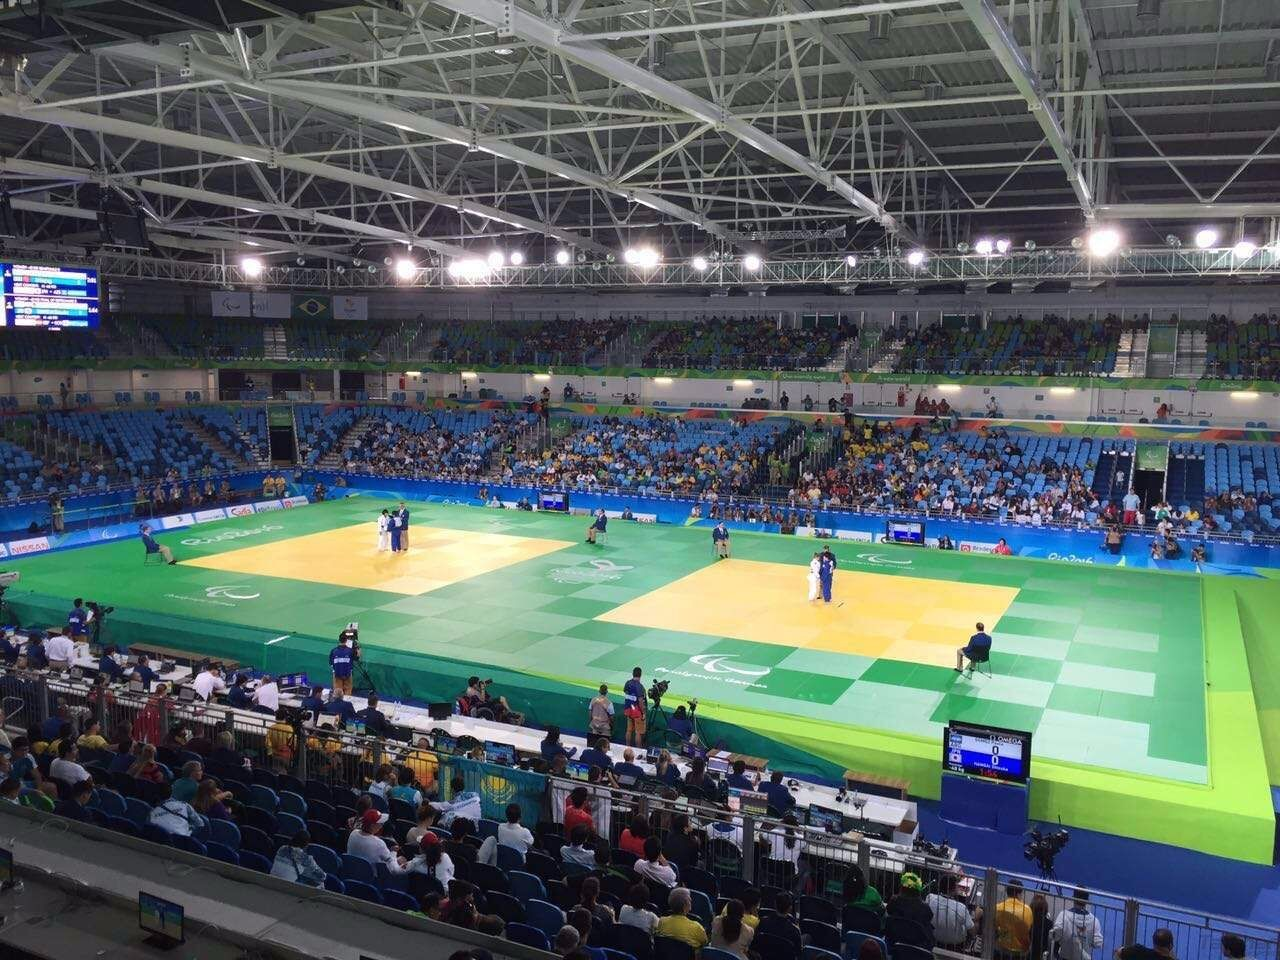 Taishan Sports as the official supplier of Judo equipment of the Rio 2016 Paralympic Games